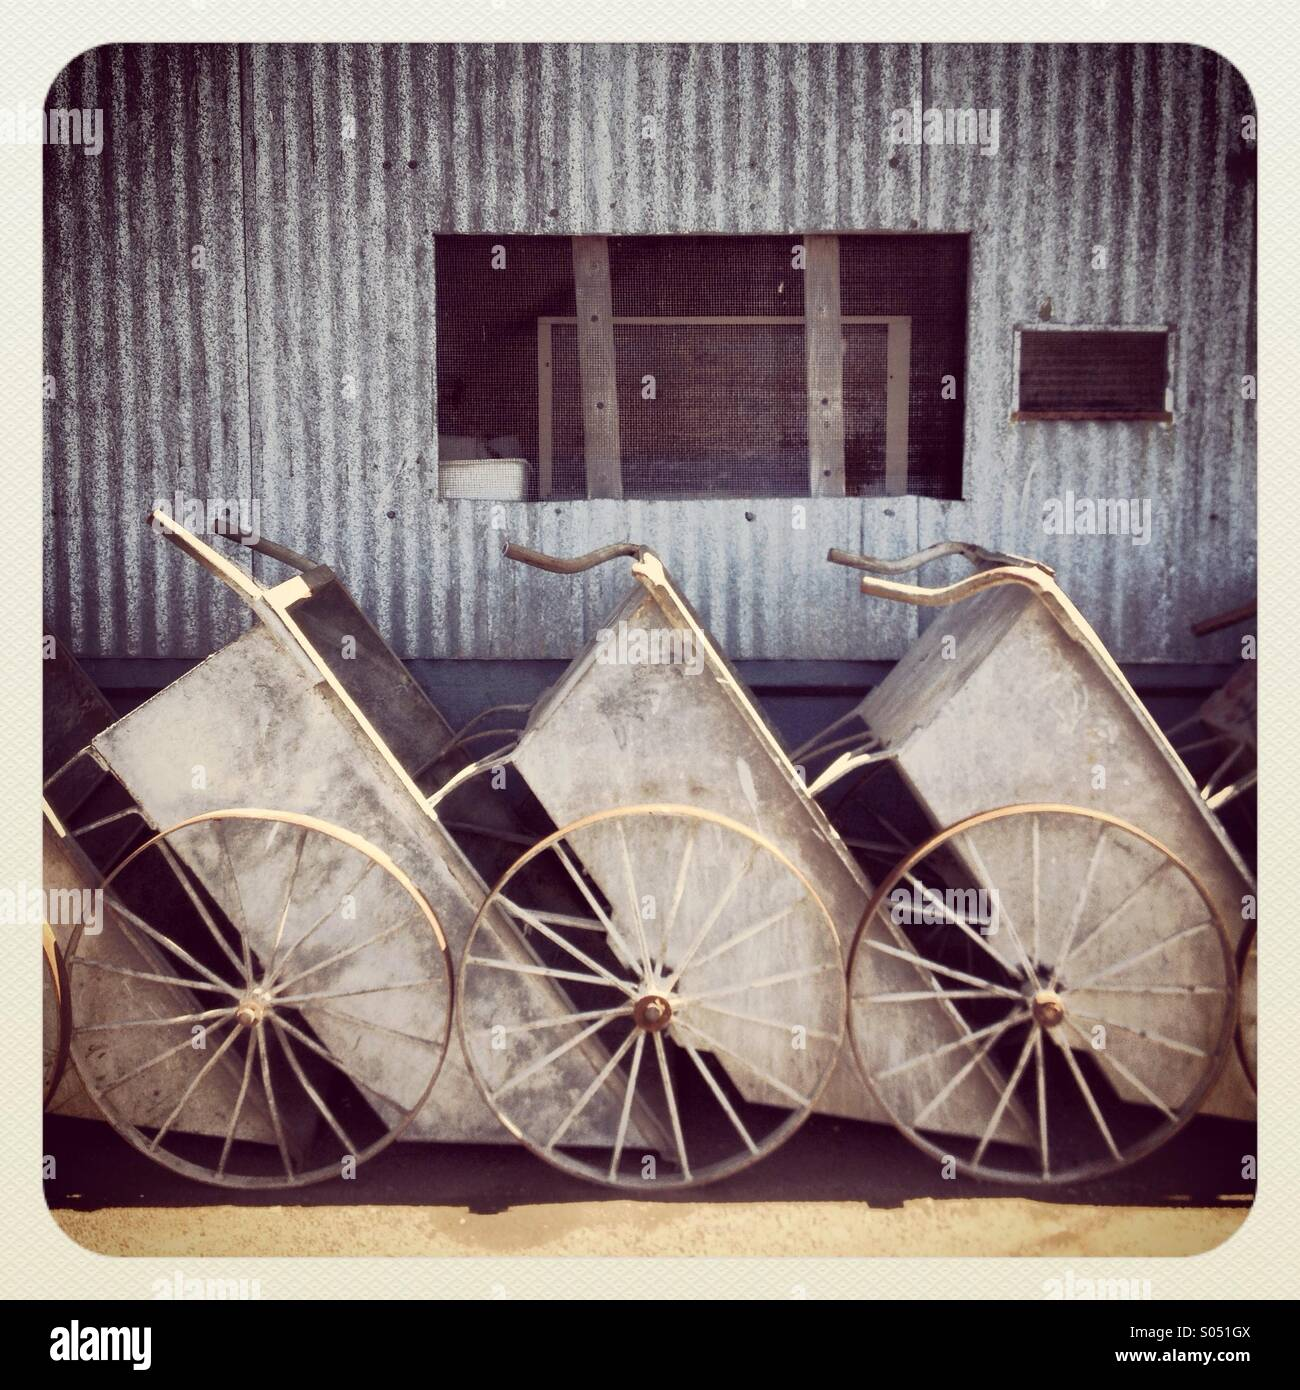 Fisherman's wheelbarrows - Stock Image